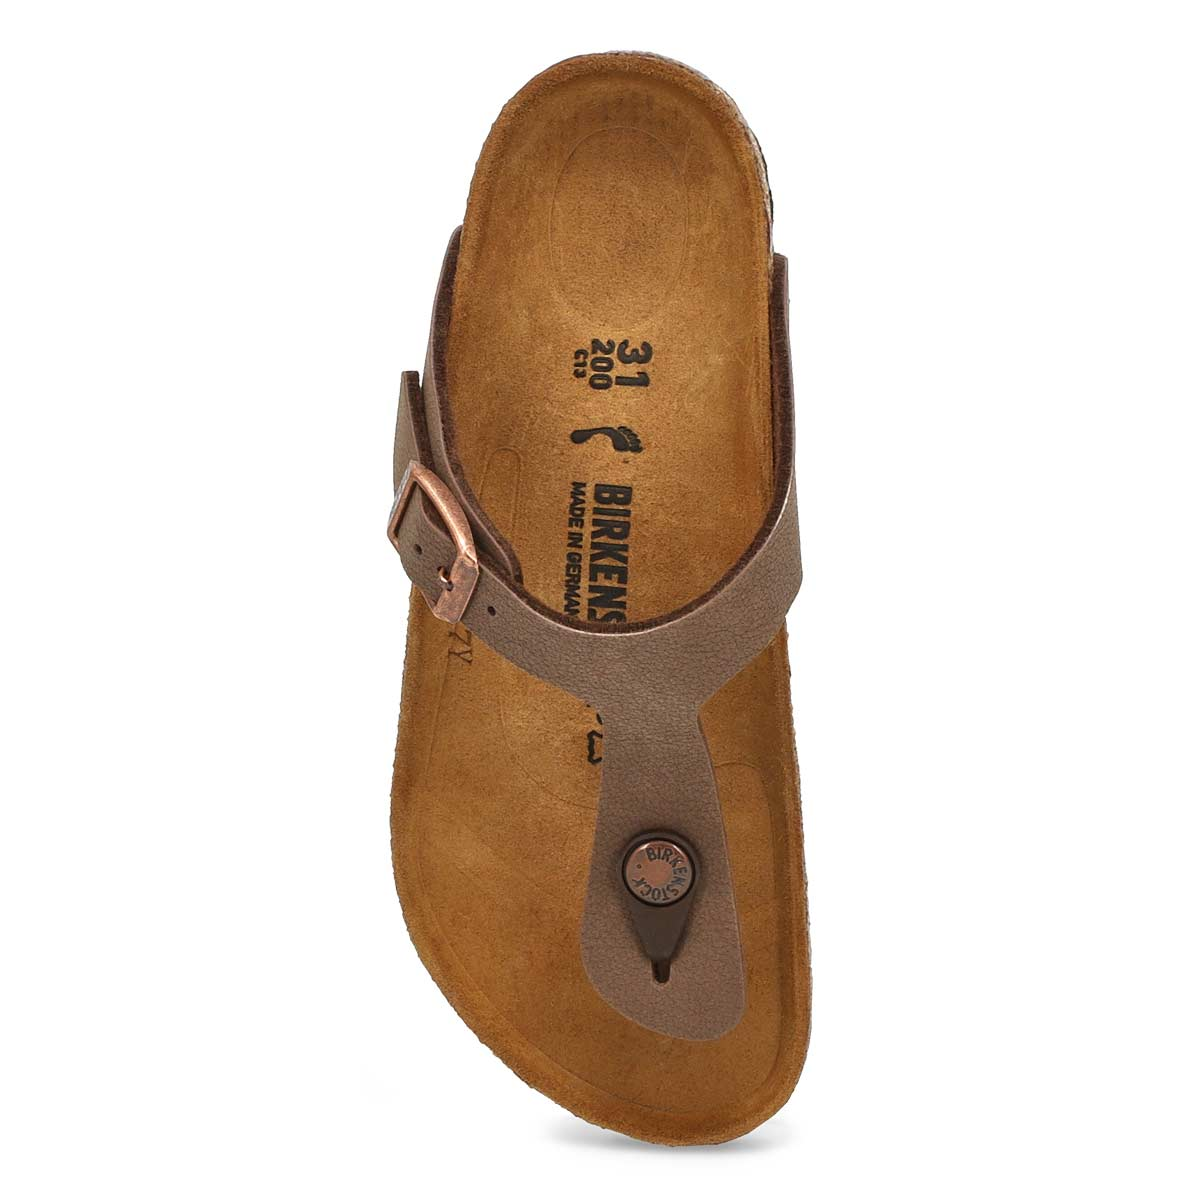 Girls Gizeh mocha thong cork sandal